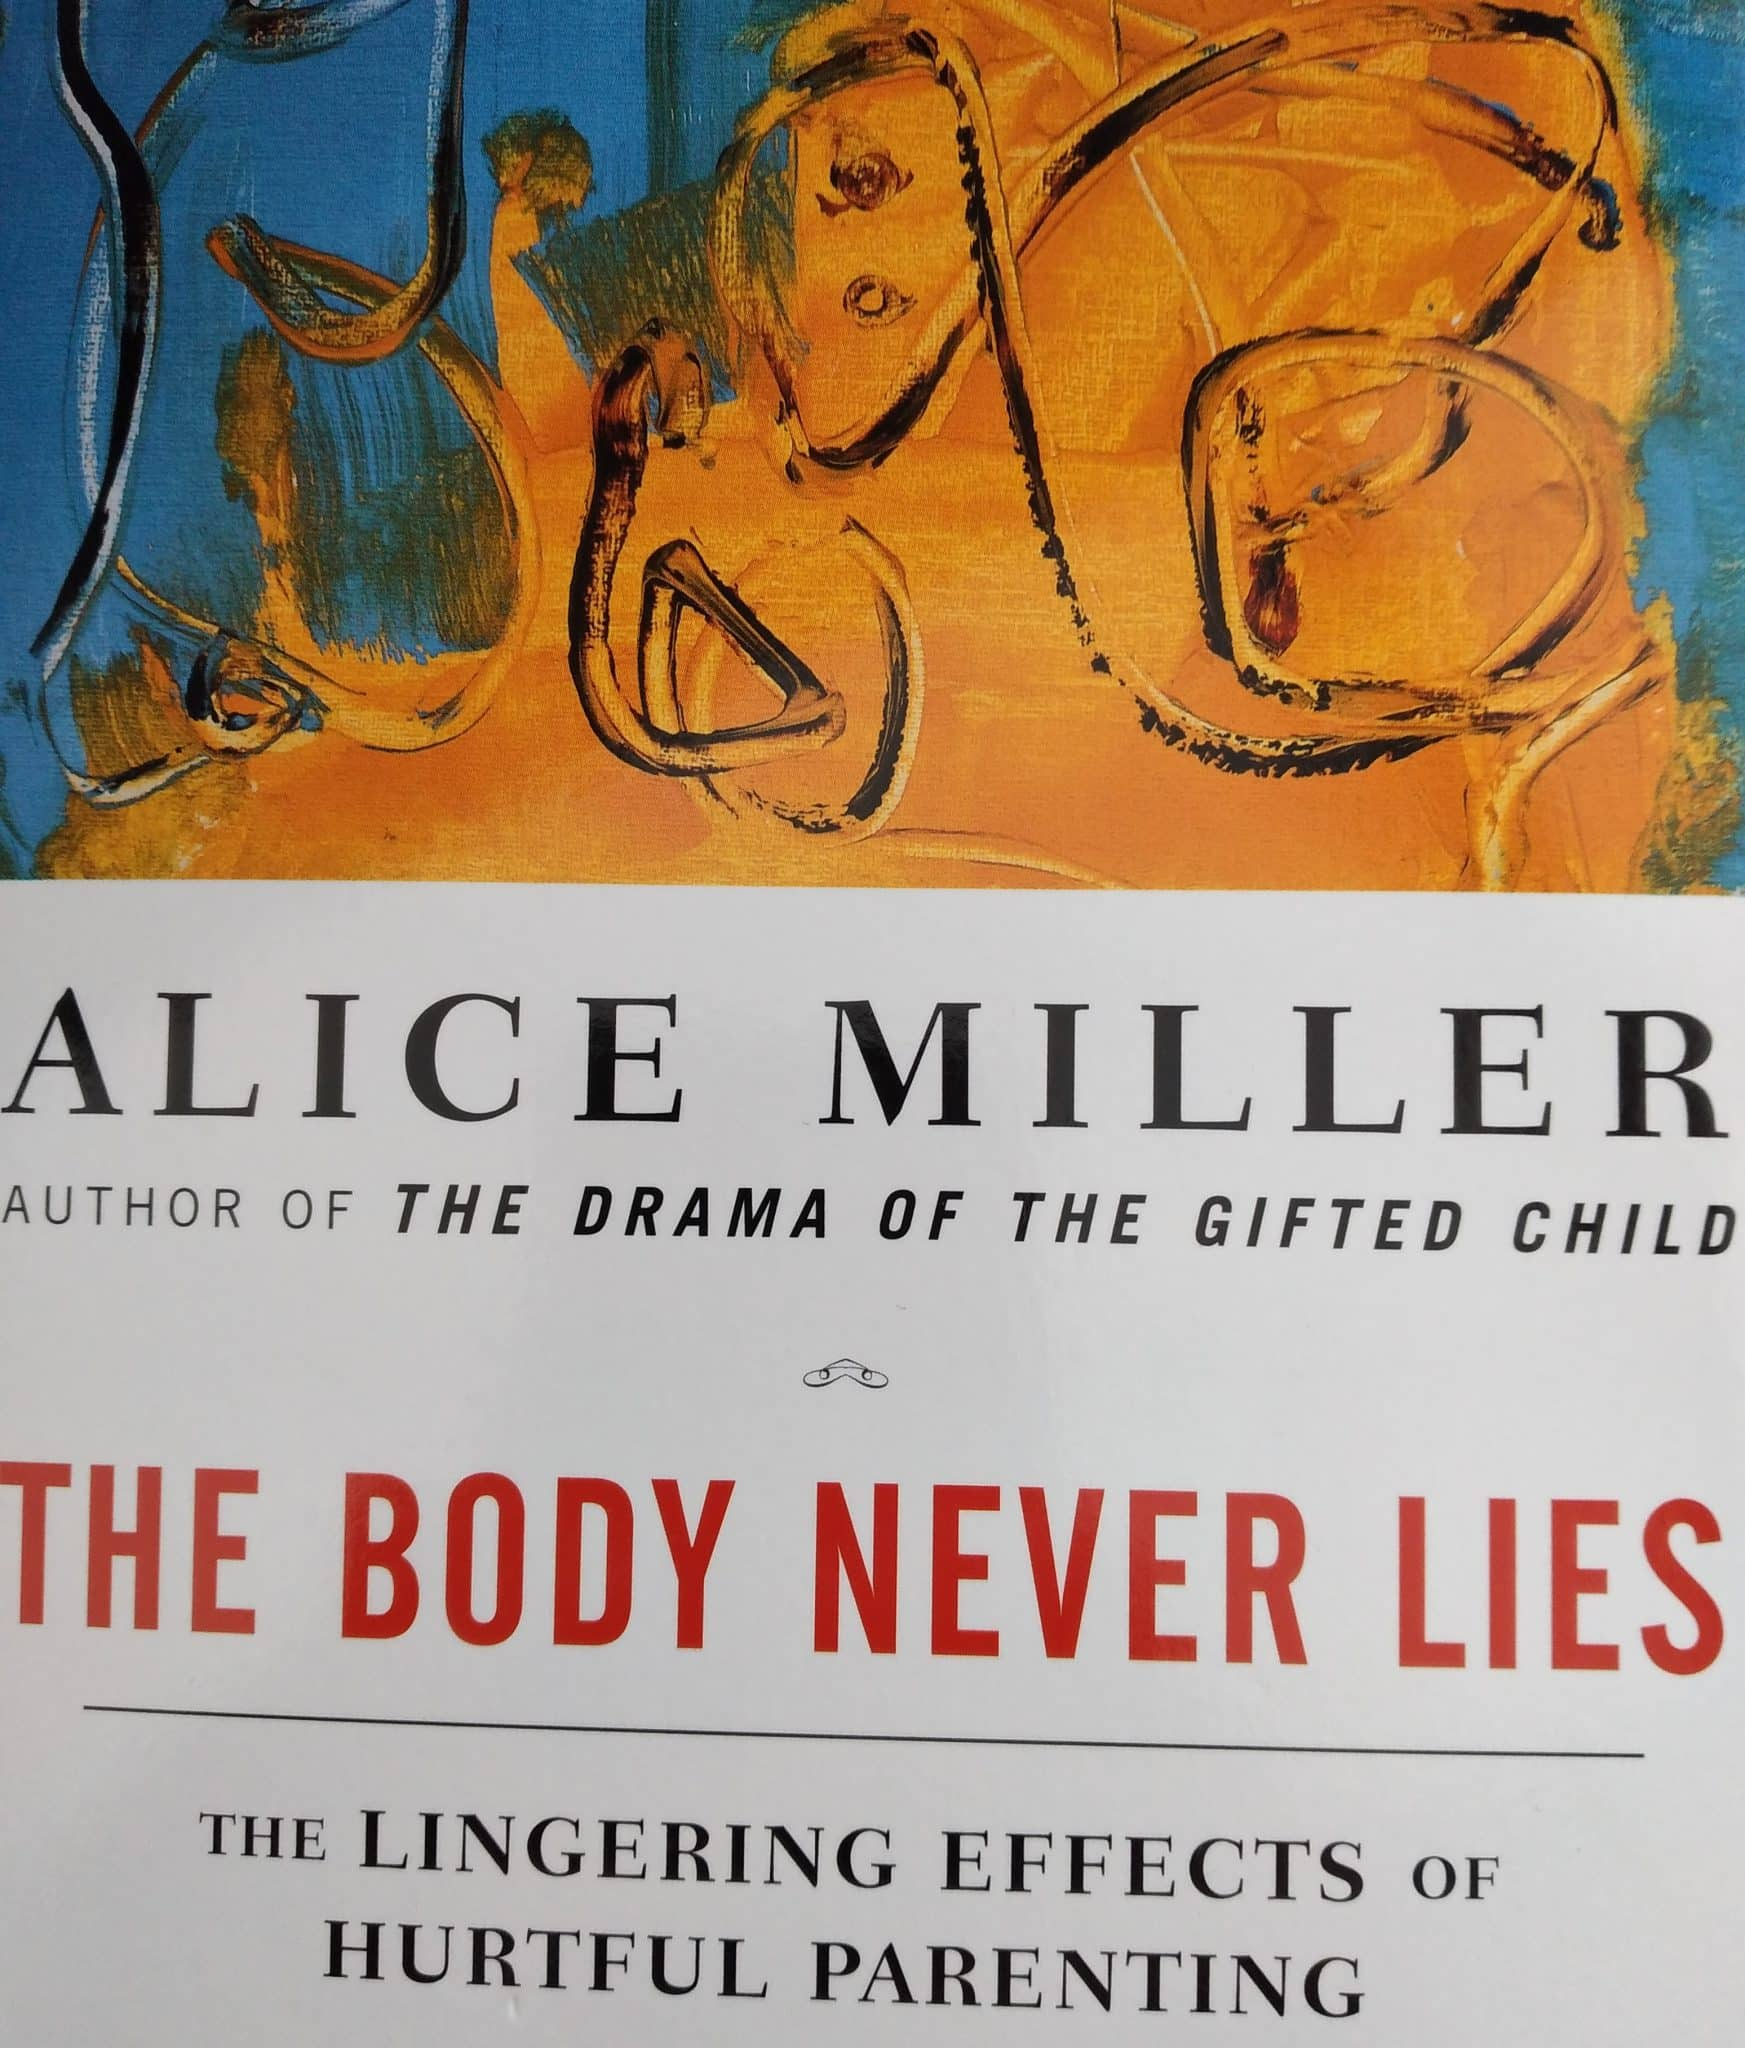 The Body Never Lies. The Lingering Effects Of Hurtful Parenting